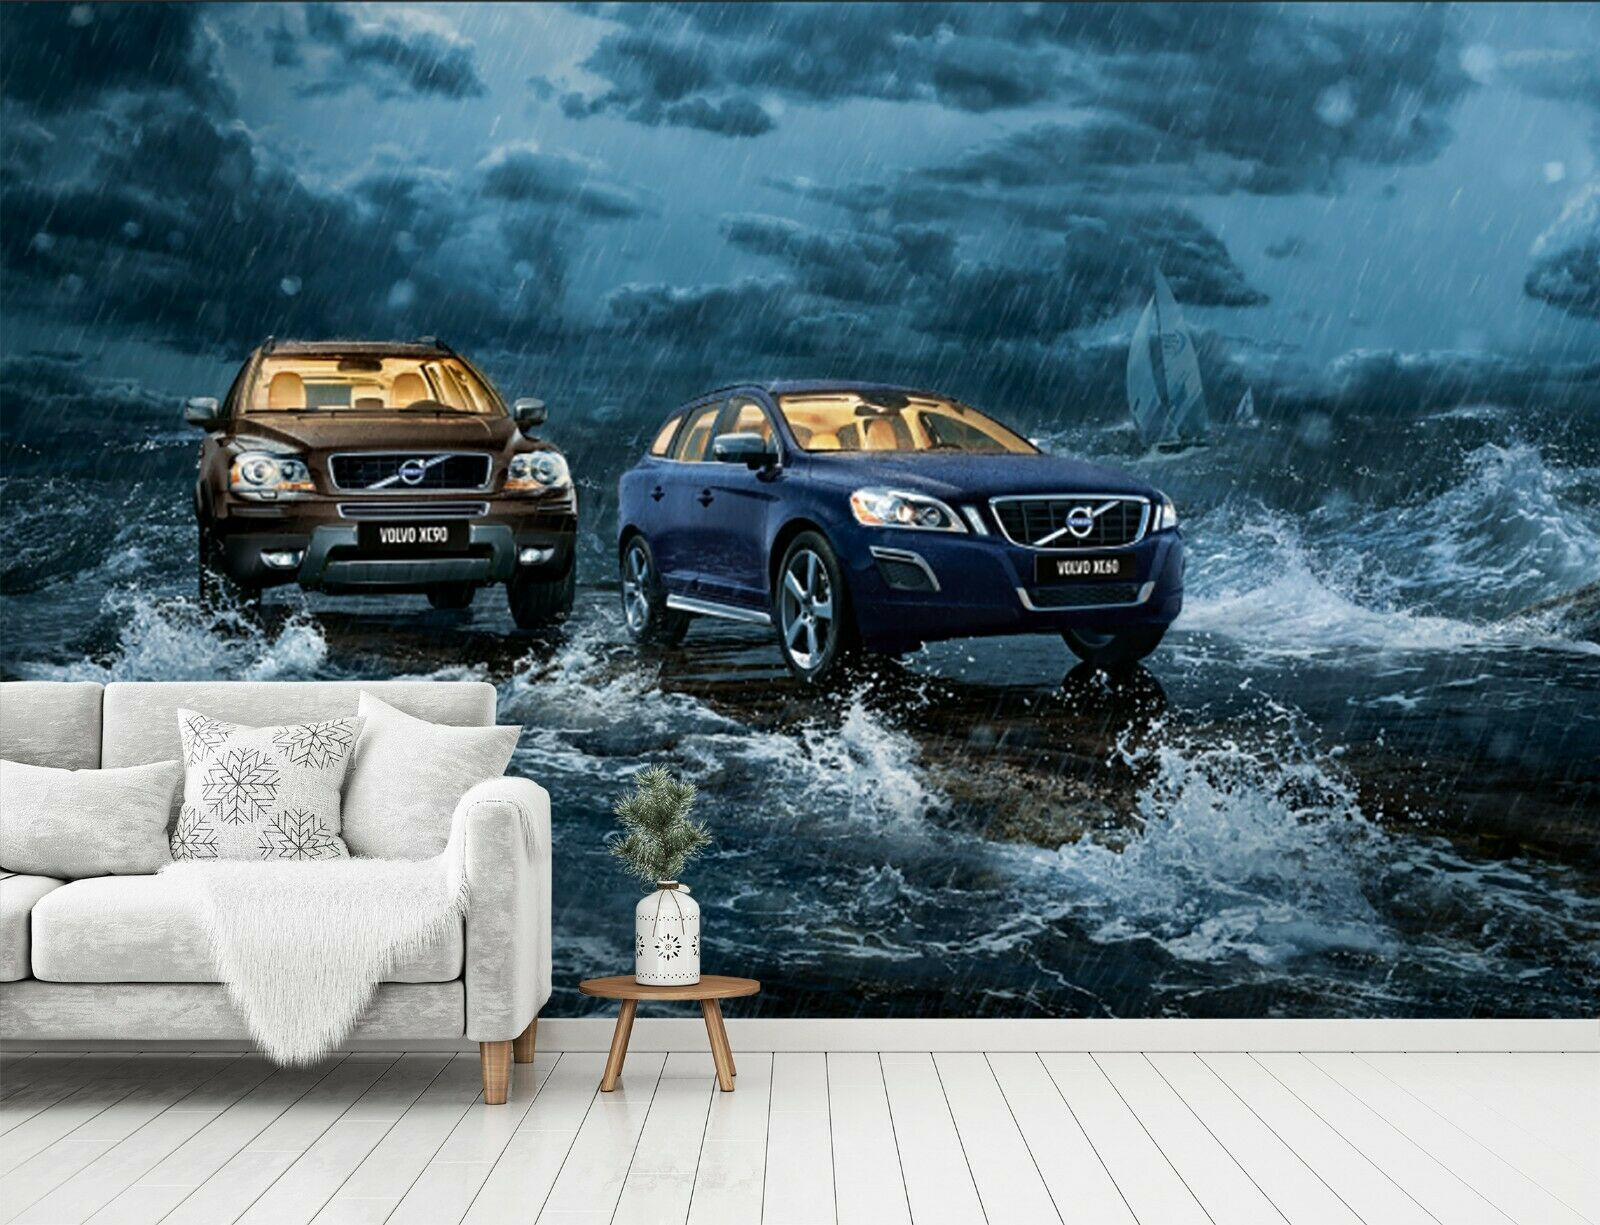 3D Rainy Day Car I38 Transport WandPapier Mural Sefl-adhesive Removable An